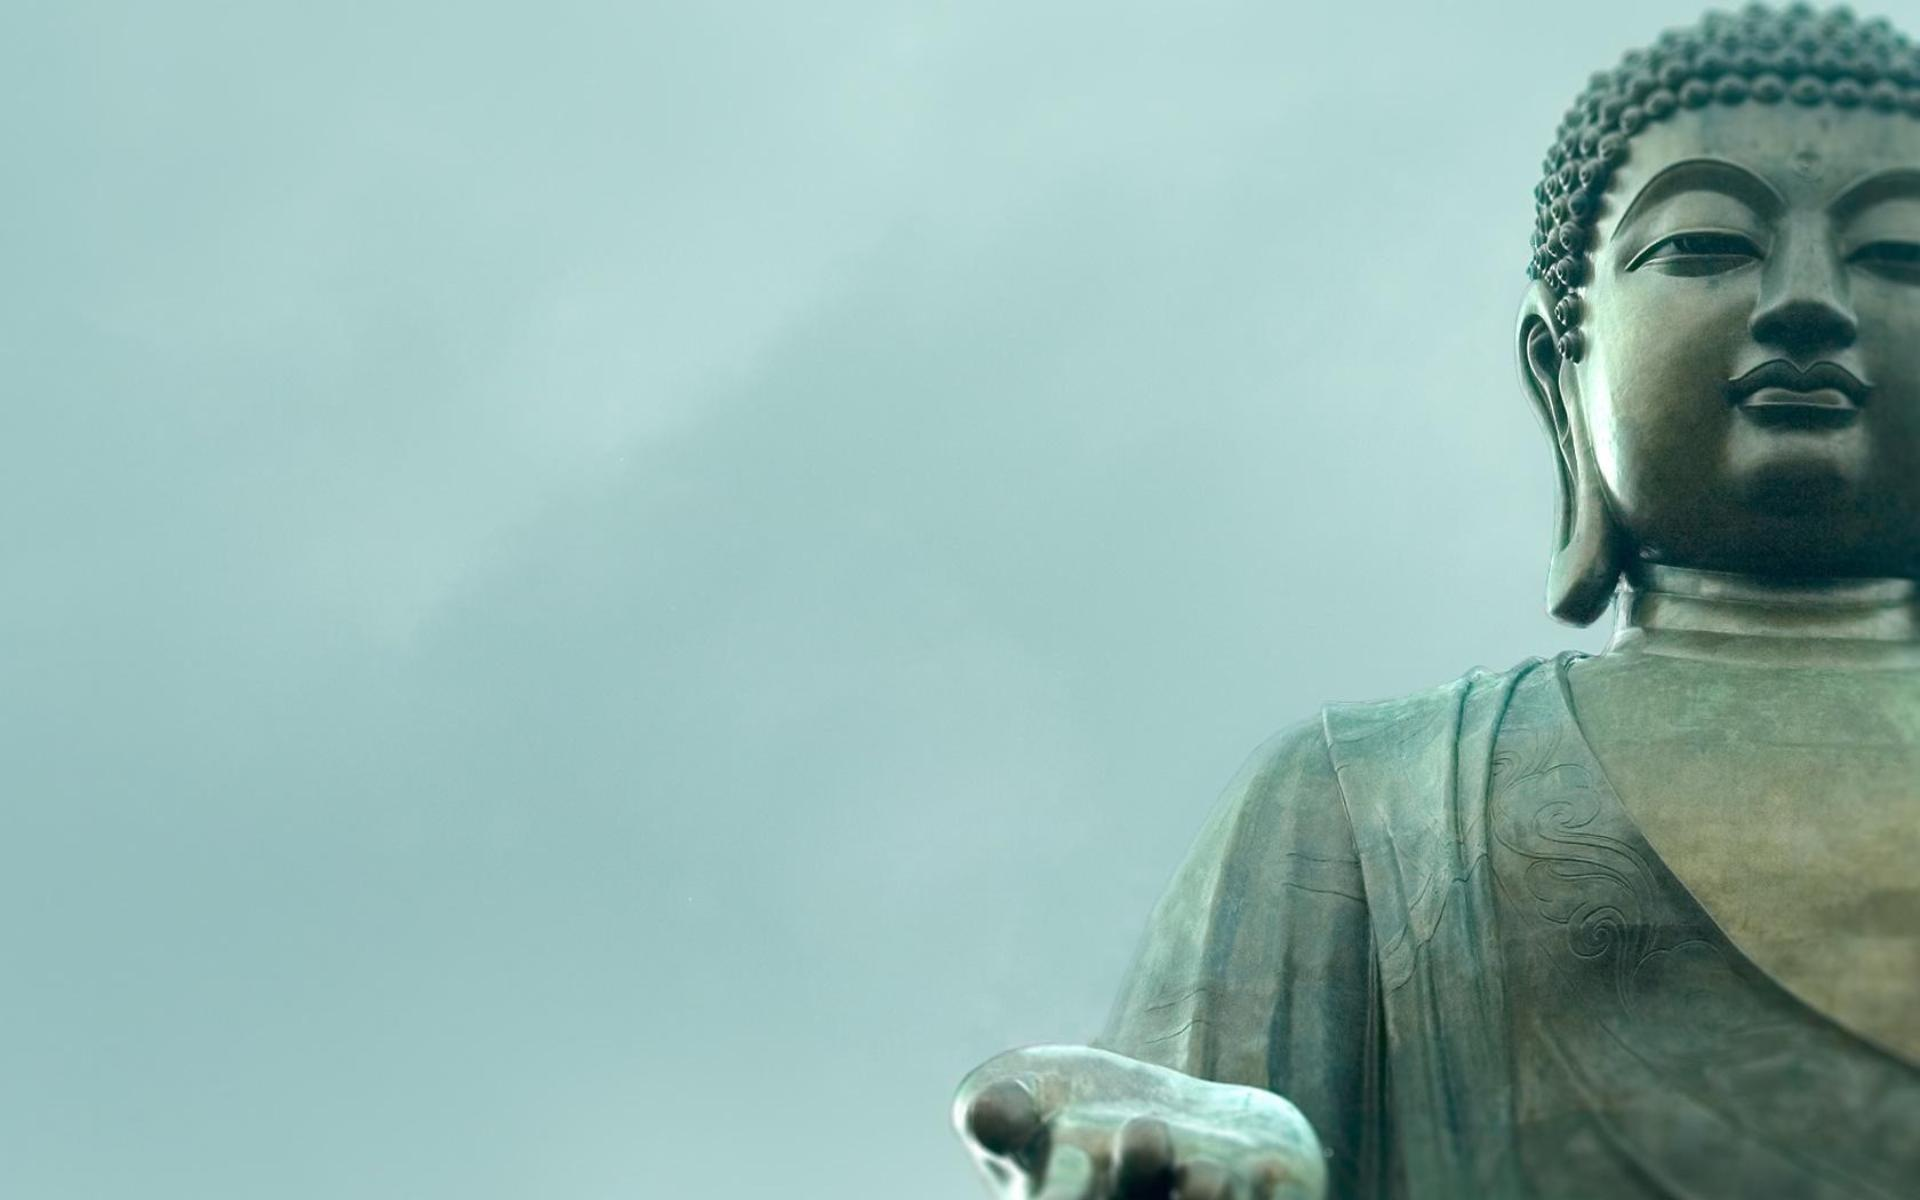 Buddha Wallpapers - Full HD wallpaper search - page 2